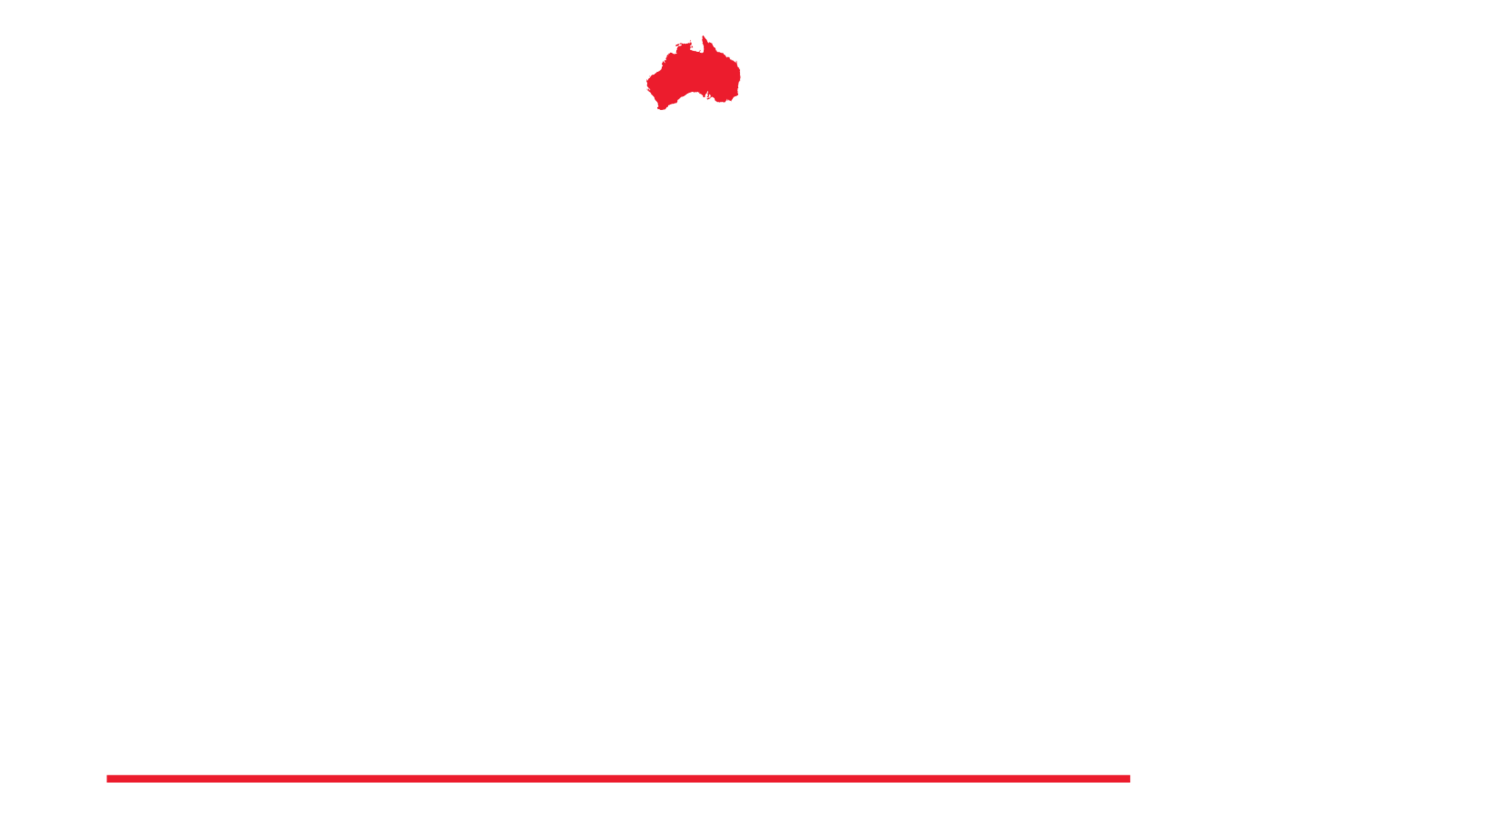 World Poultry Foundation